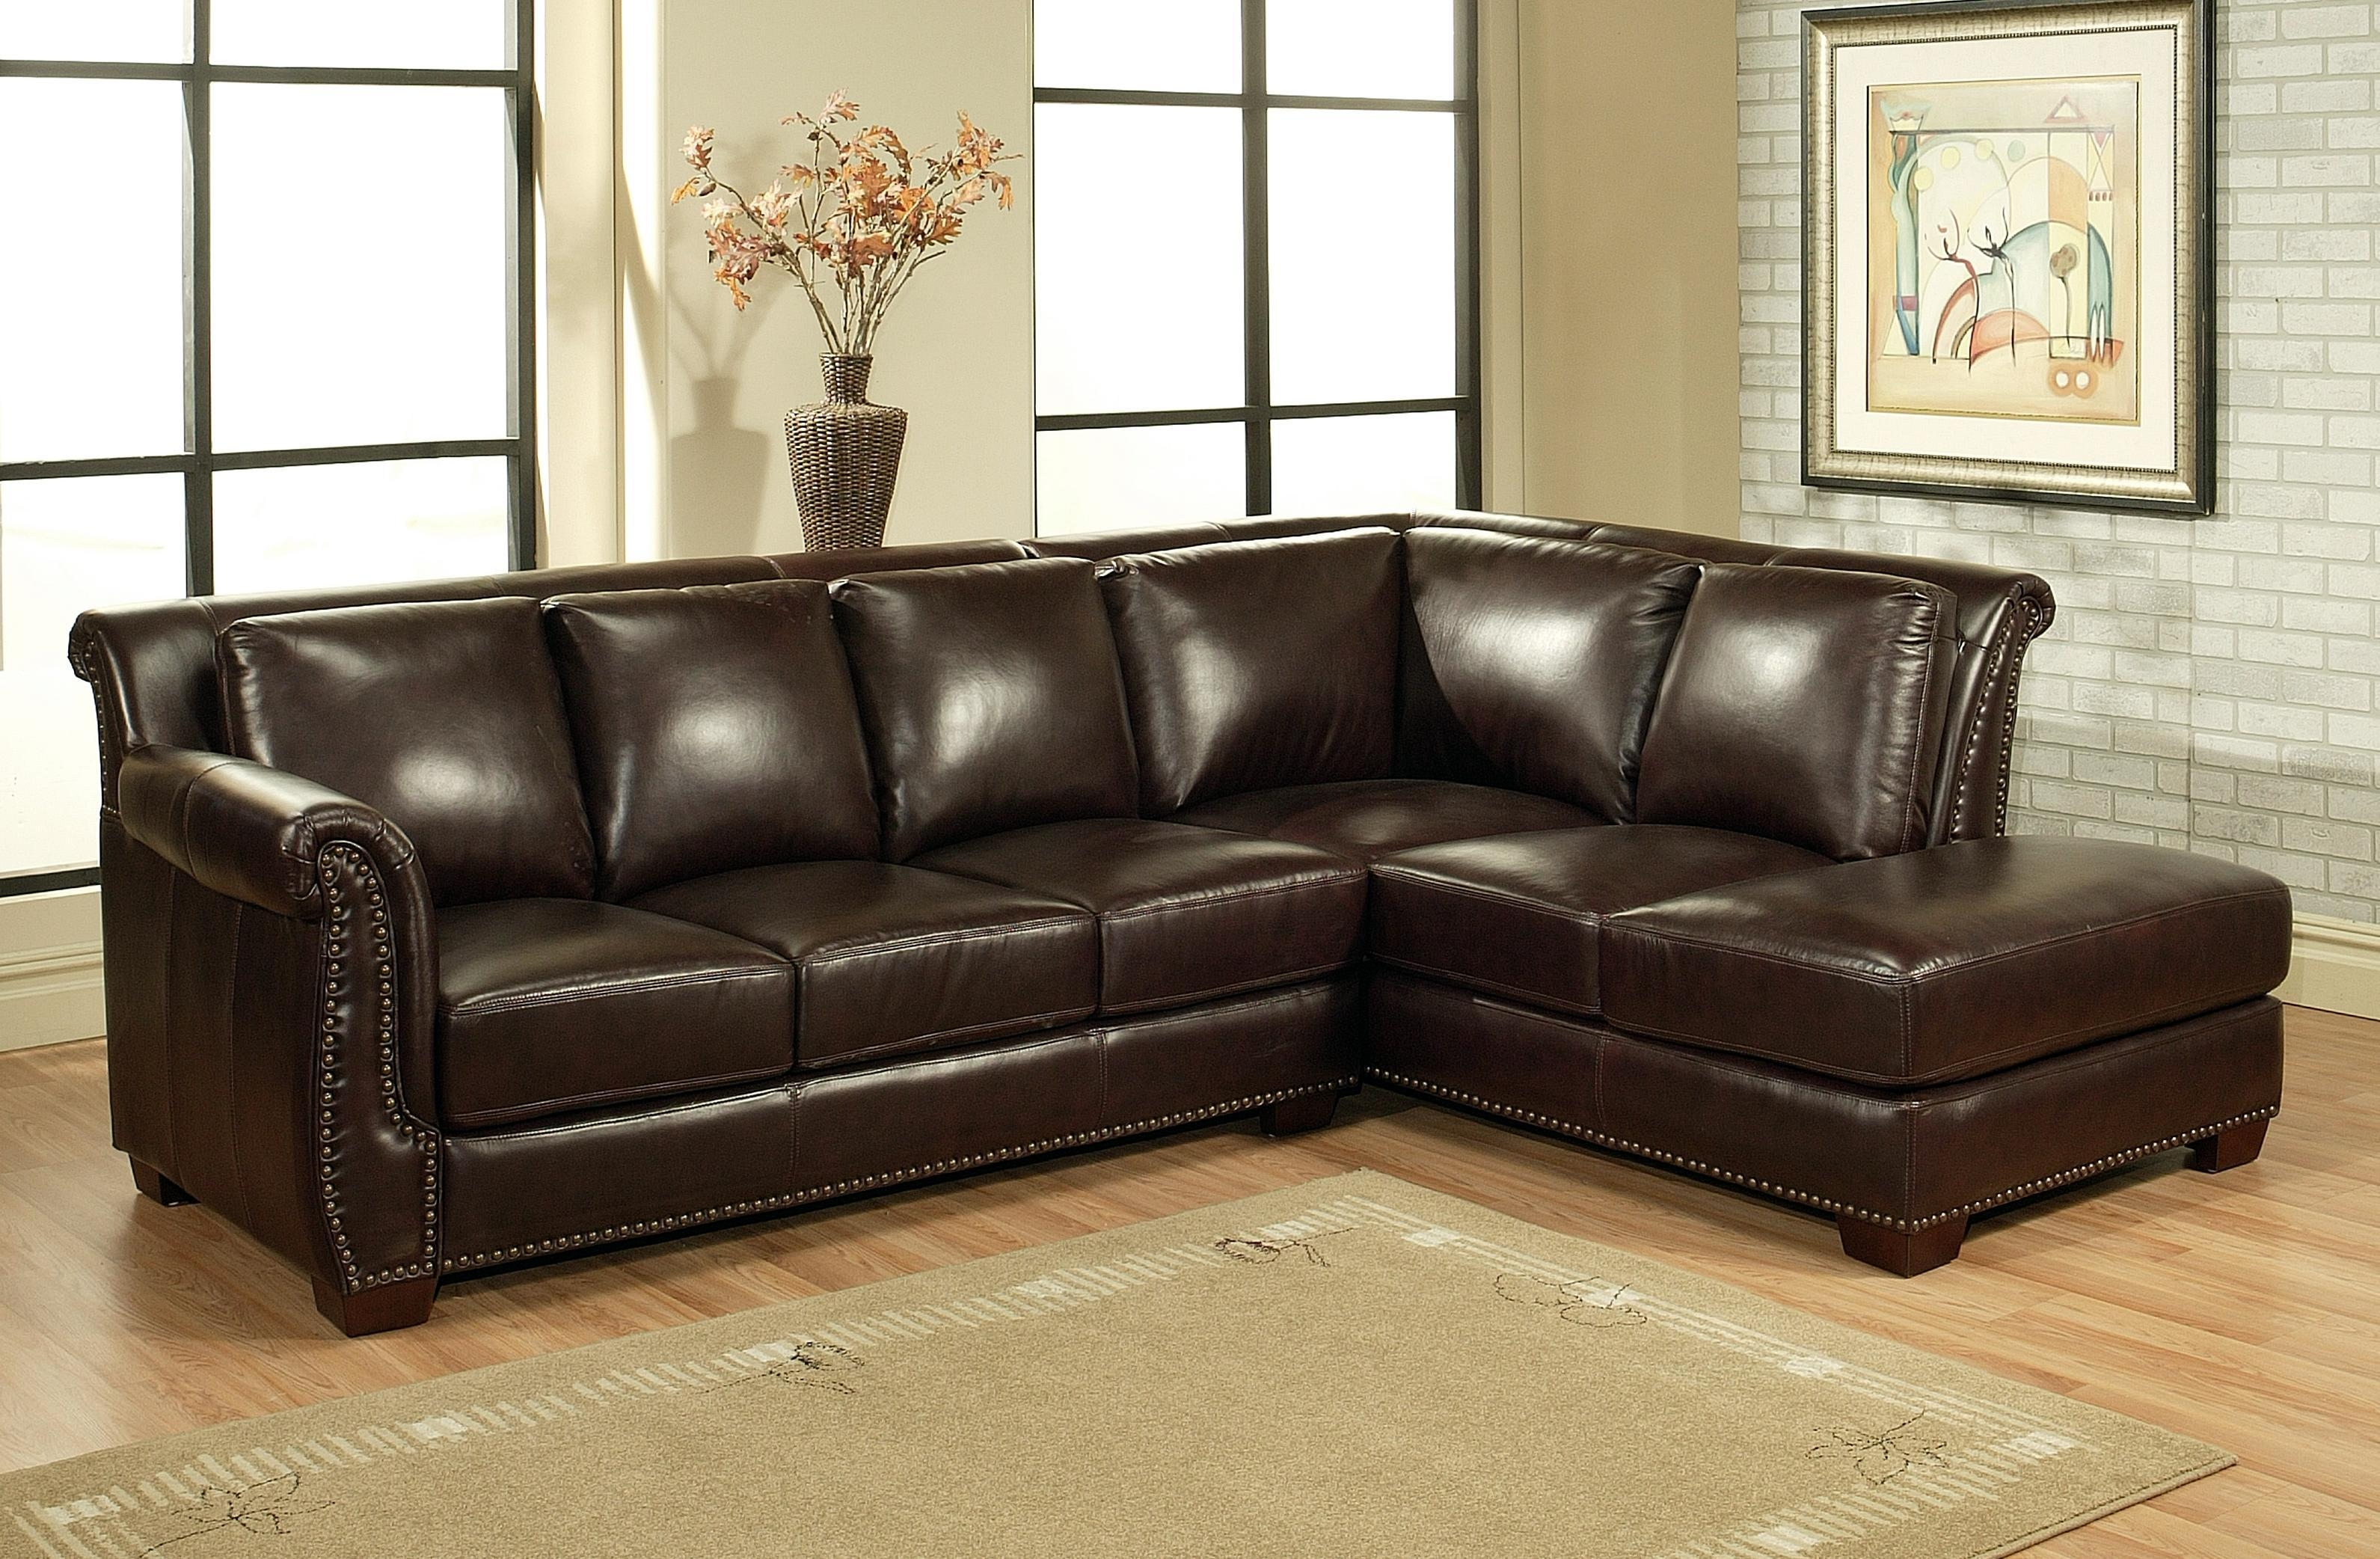 Small Space Sectional Sofa (Image 18 of 20)